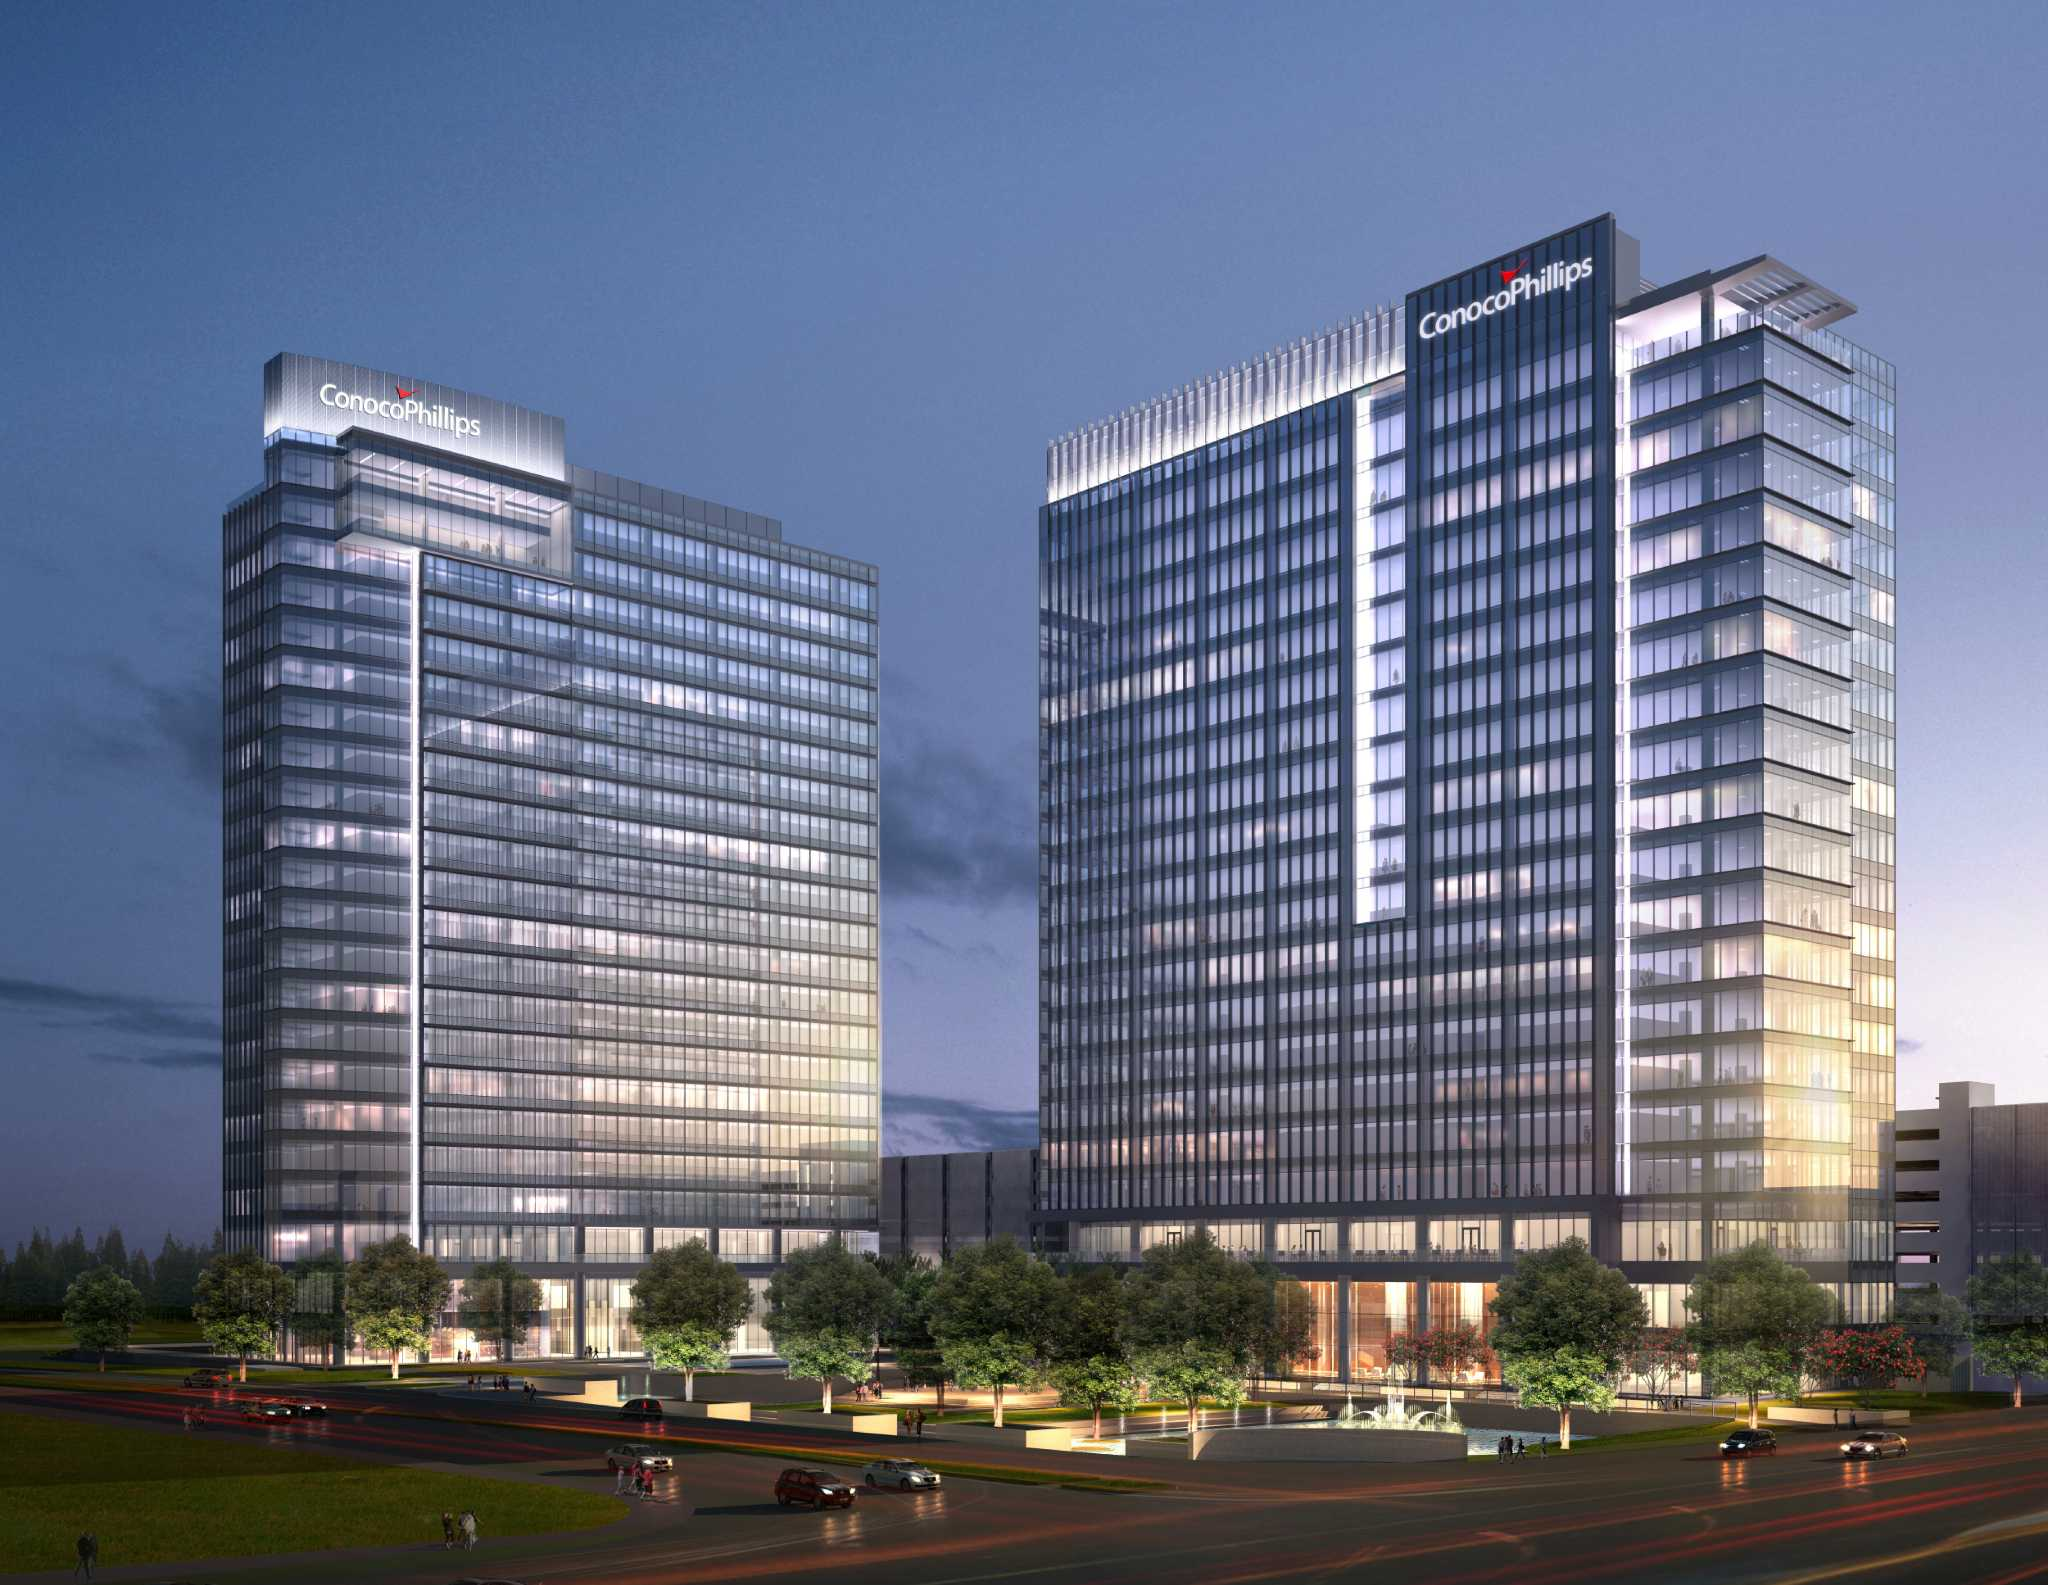 Conocophillips has new space lined up houston chronicle for Cost to build a house in houston